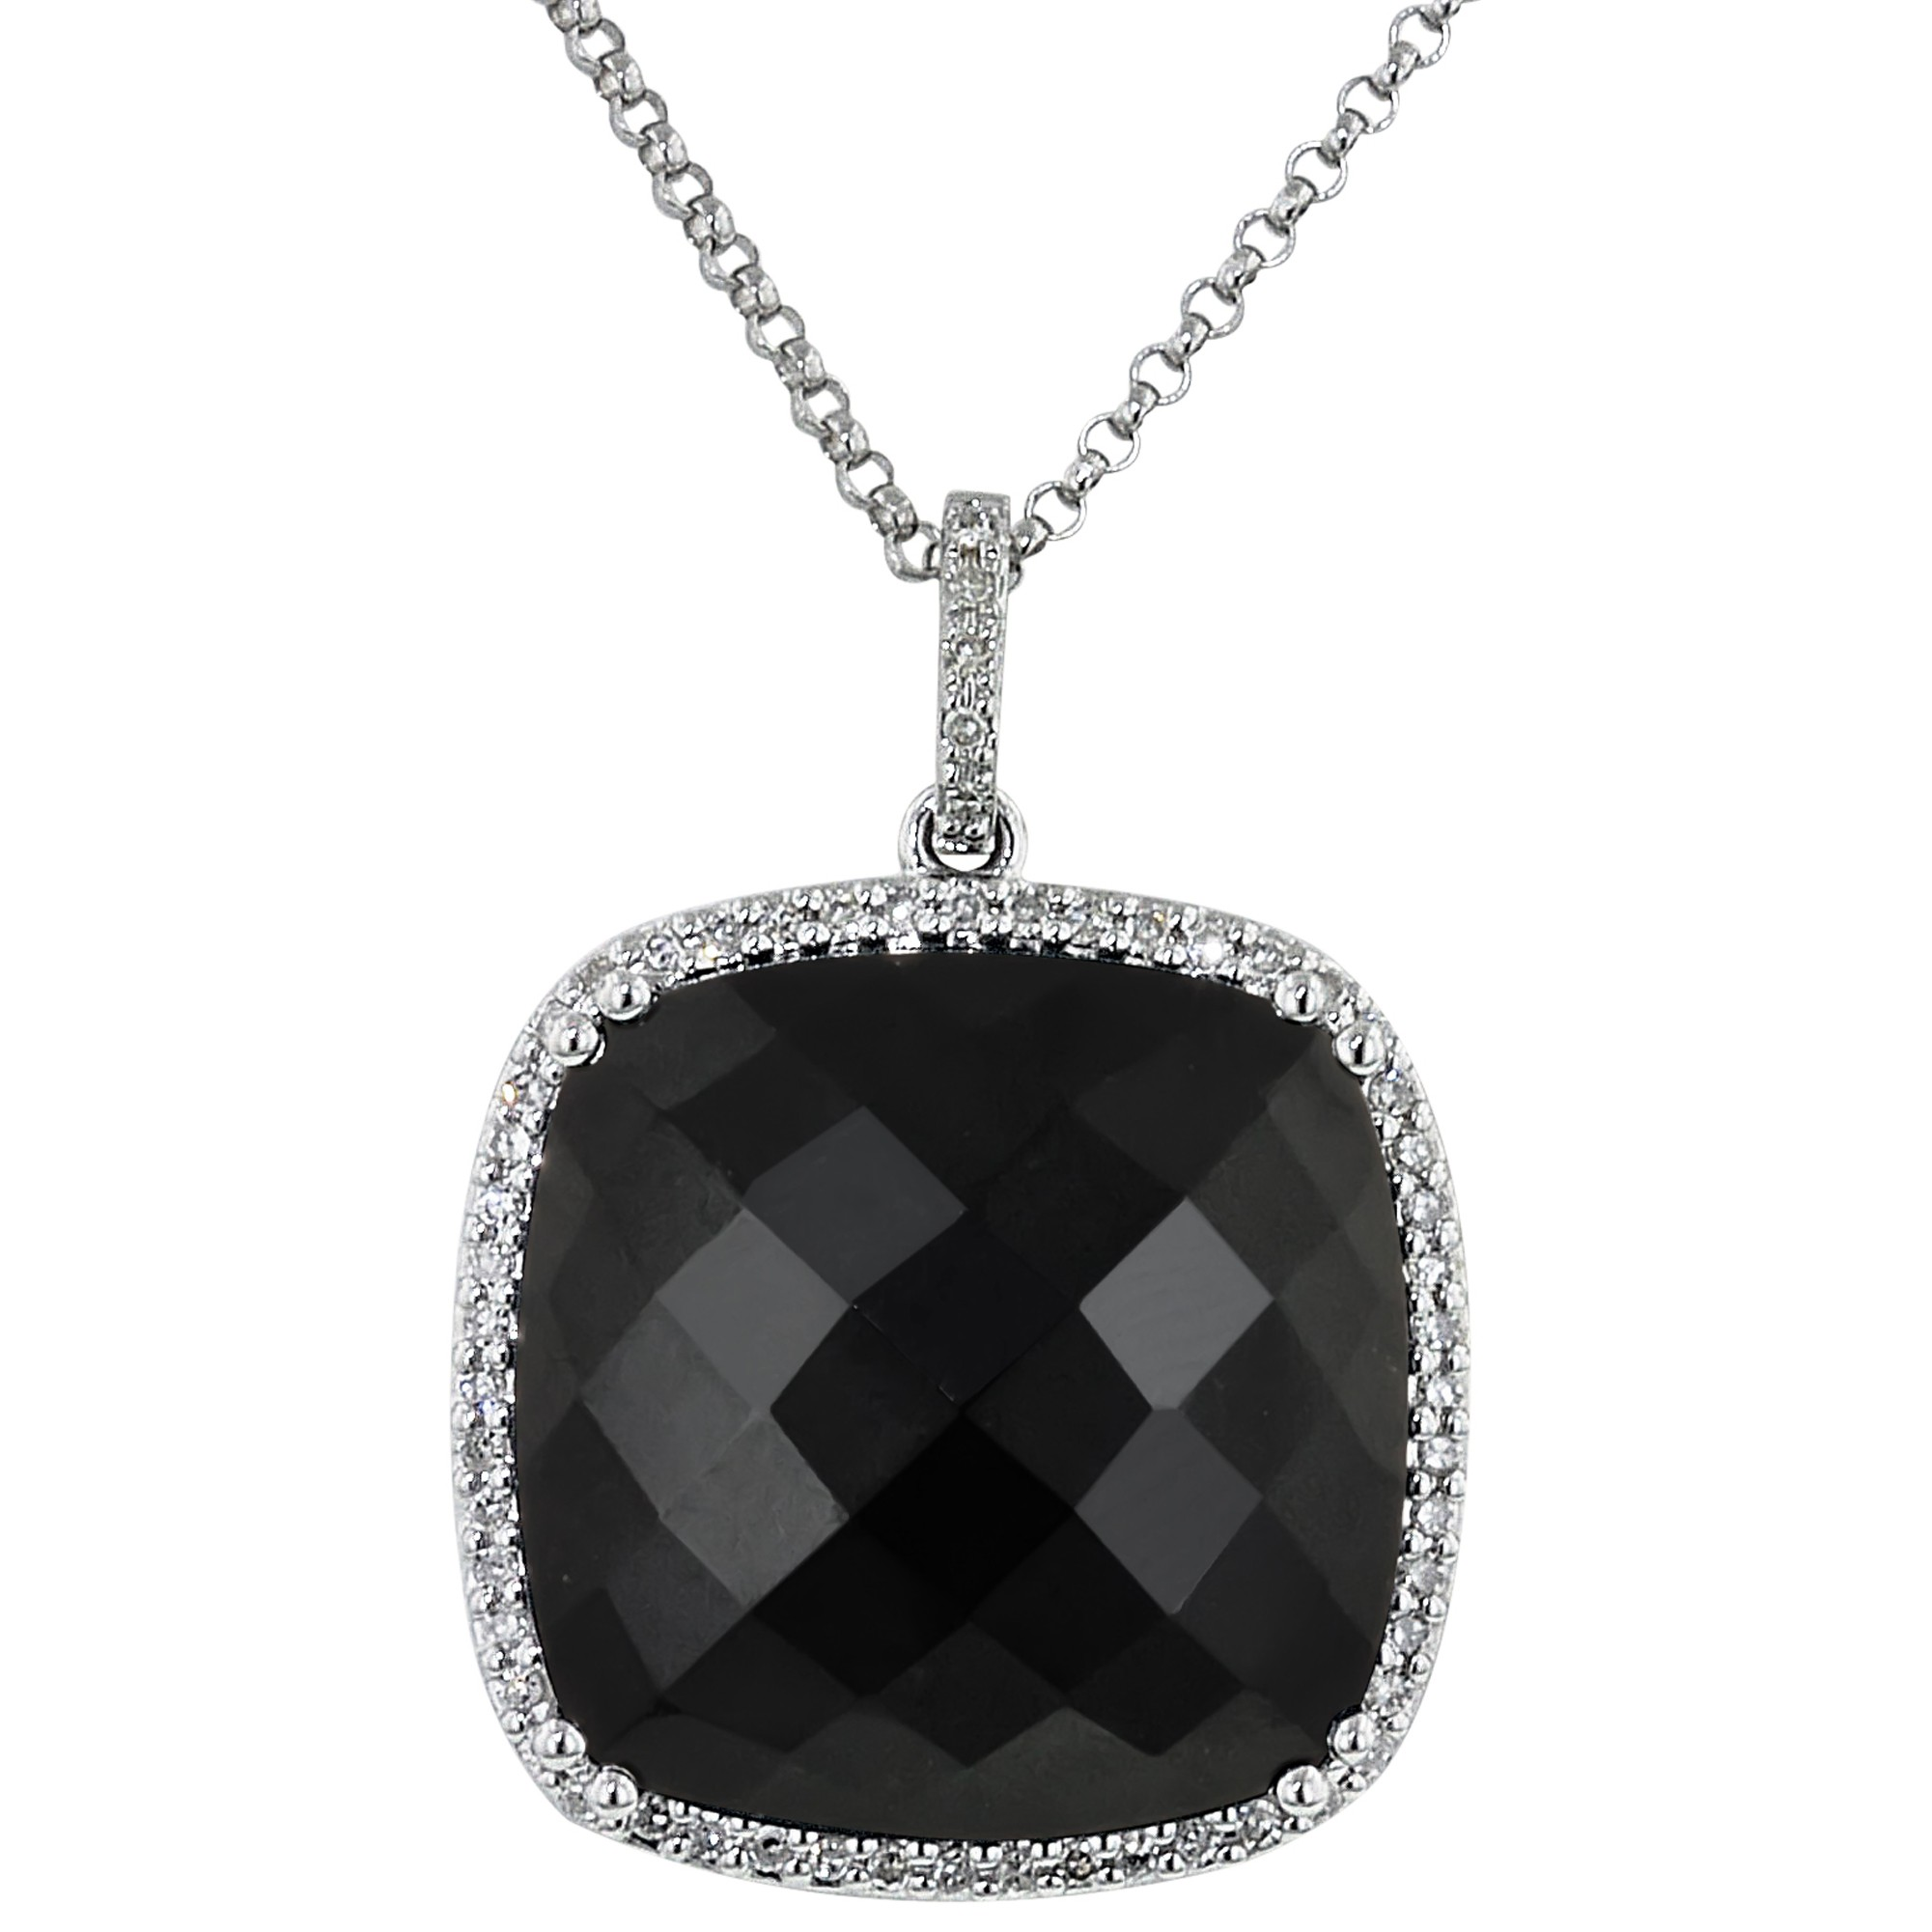 dabakarov black onyx necklace with diamonds in 14kt white gold (1/7ct tw) nydmmff